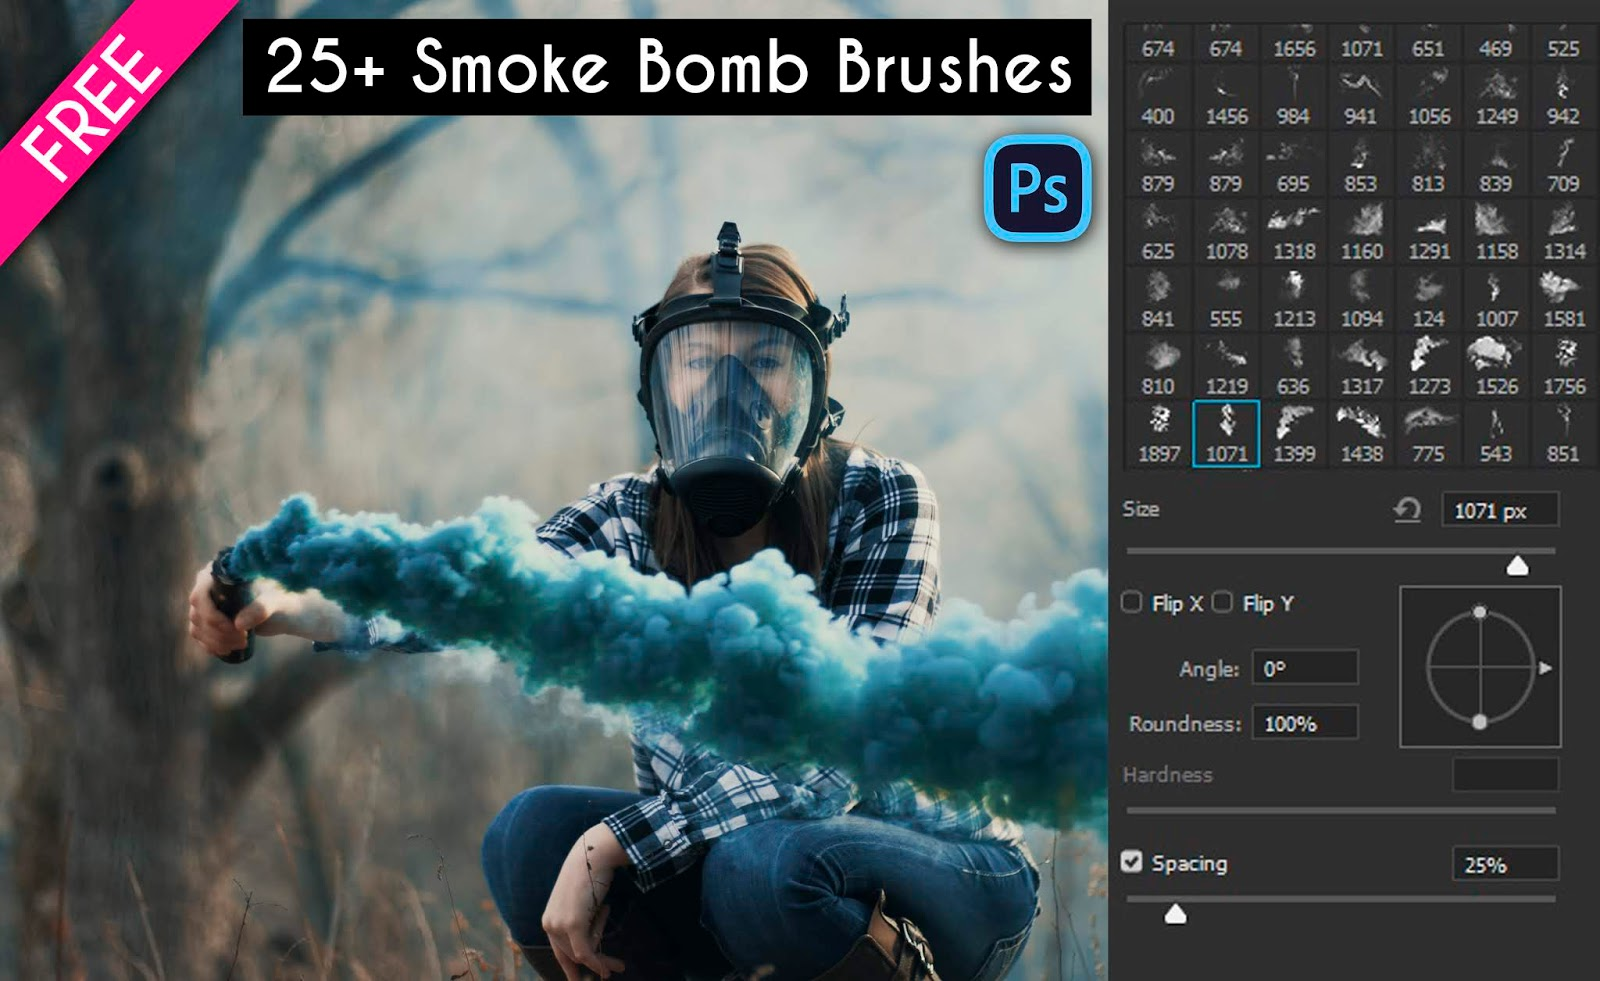 Download Top 25+ Color Smoke Bomb Brushes of 2020 for Free